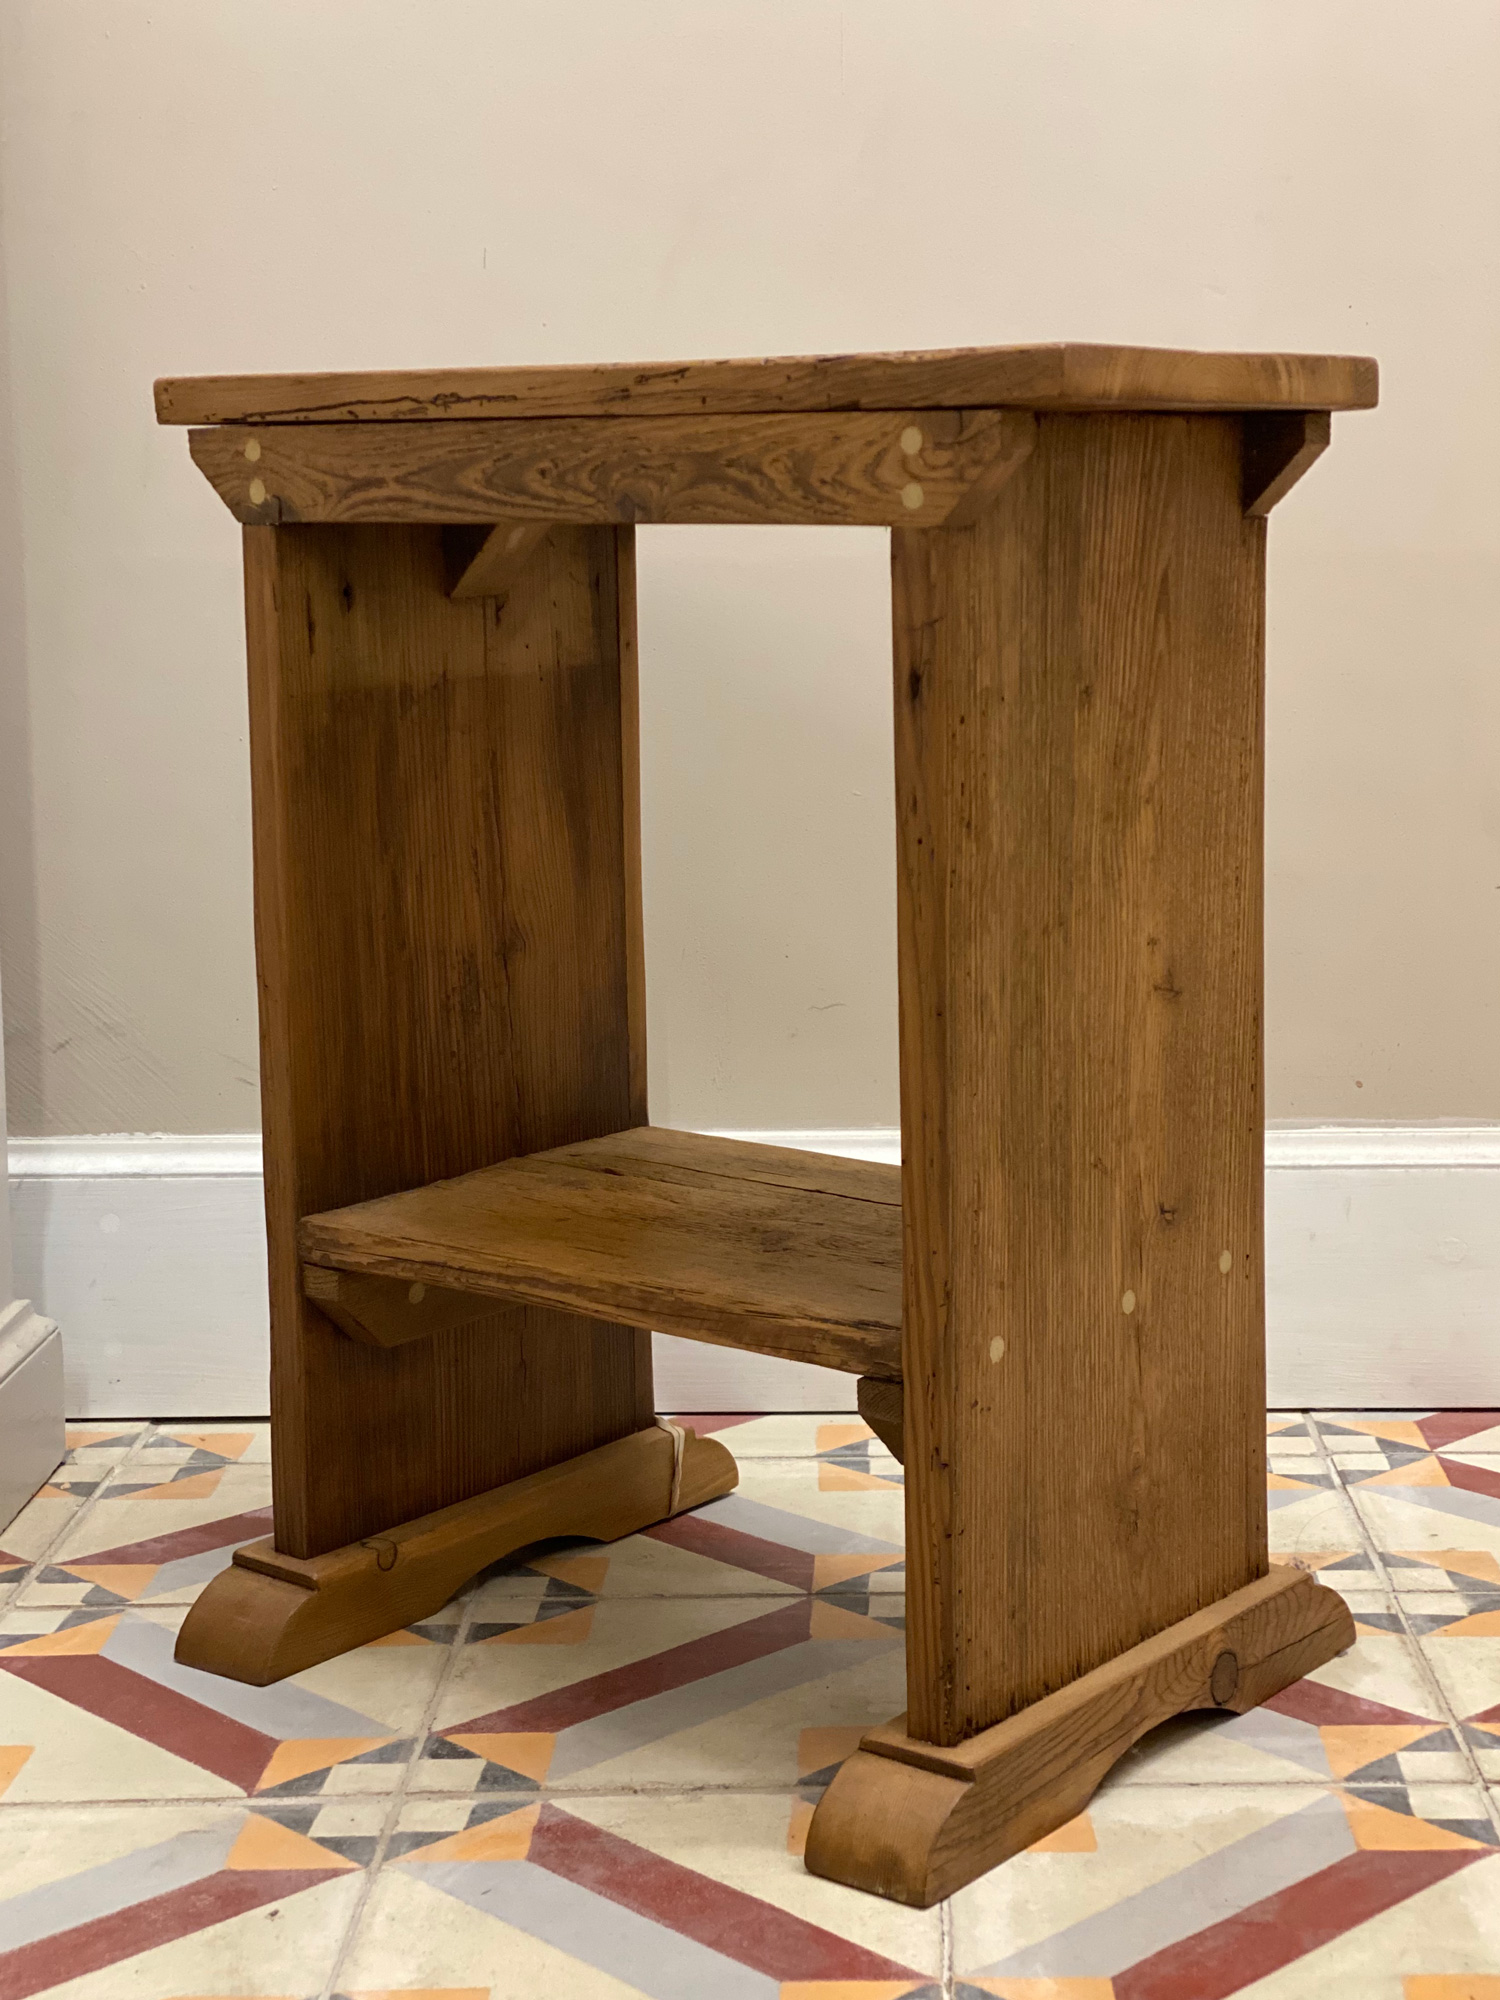 Reclaimed pine stool and table on aztec tiles